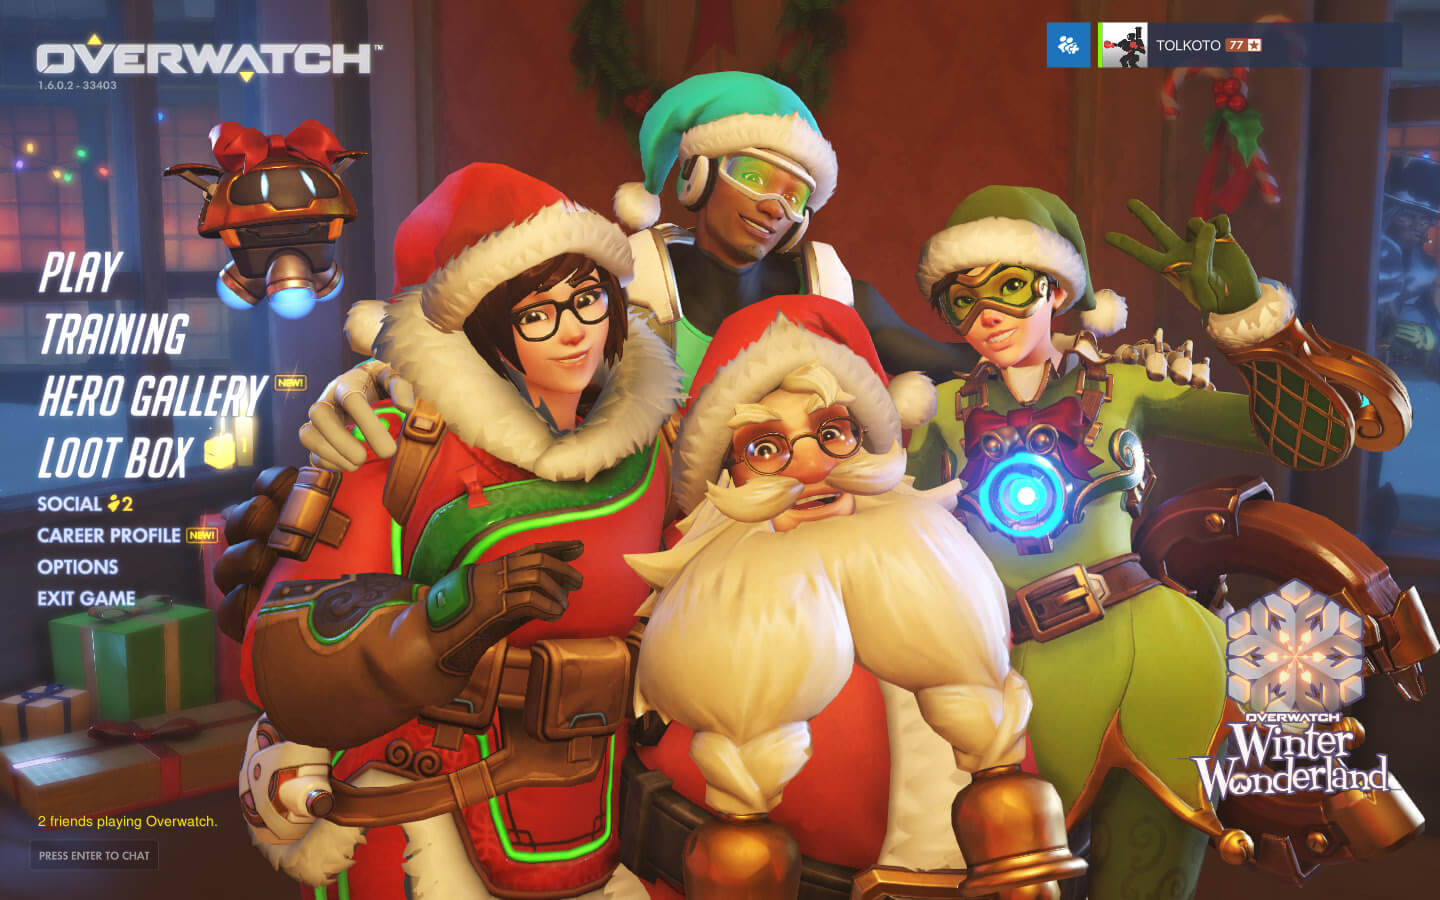 Overwatch is celebrating Christmas.